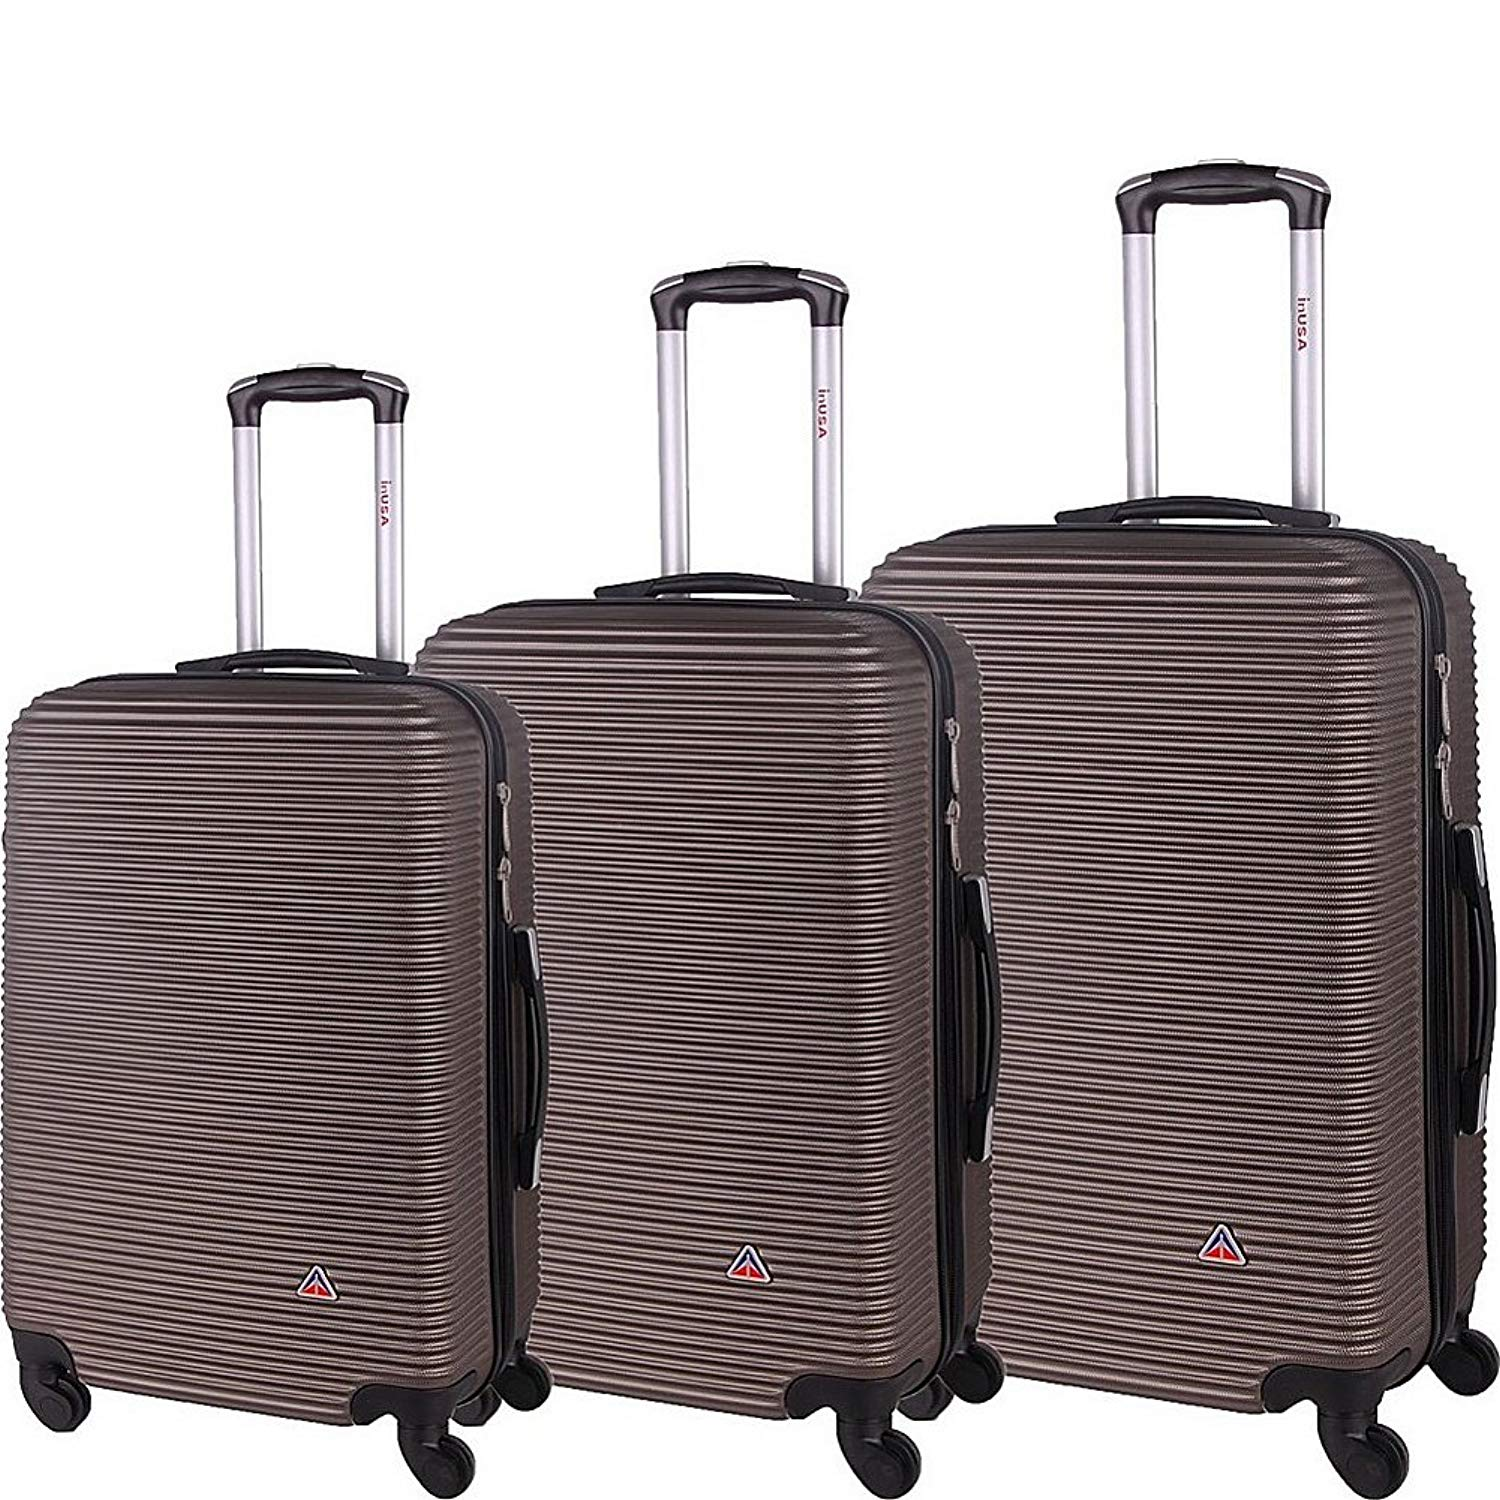 40910fef0 Get Quotations · inUSA Luggage Royal 3 Piece Lightweight Hardside Spinner  Luggage Set (Brown)